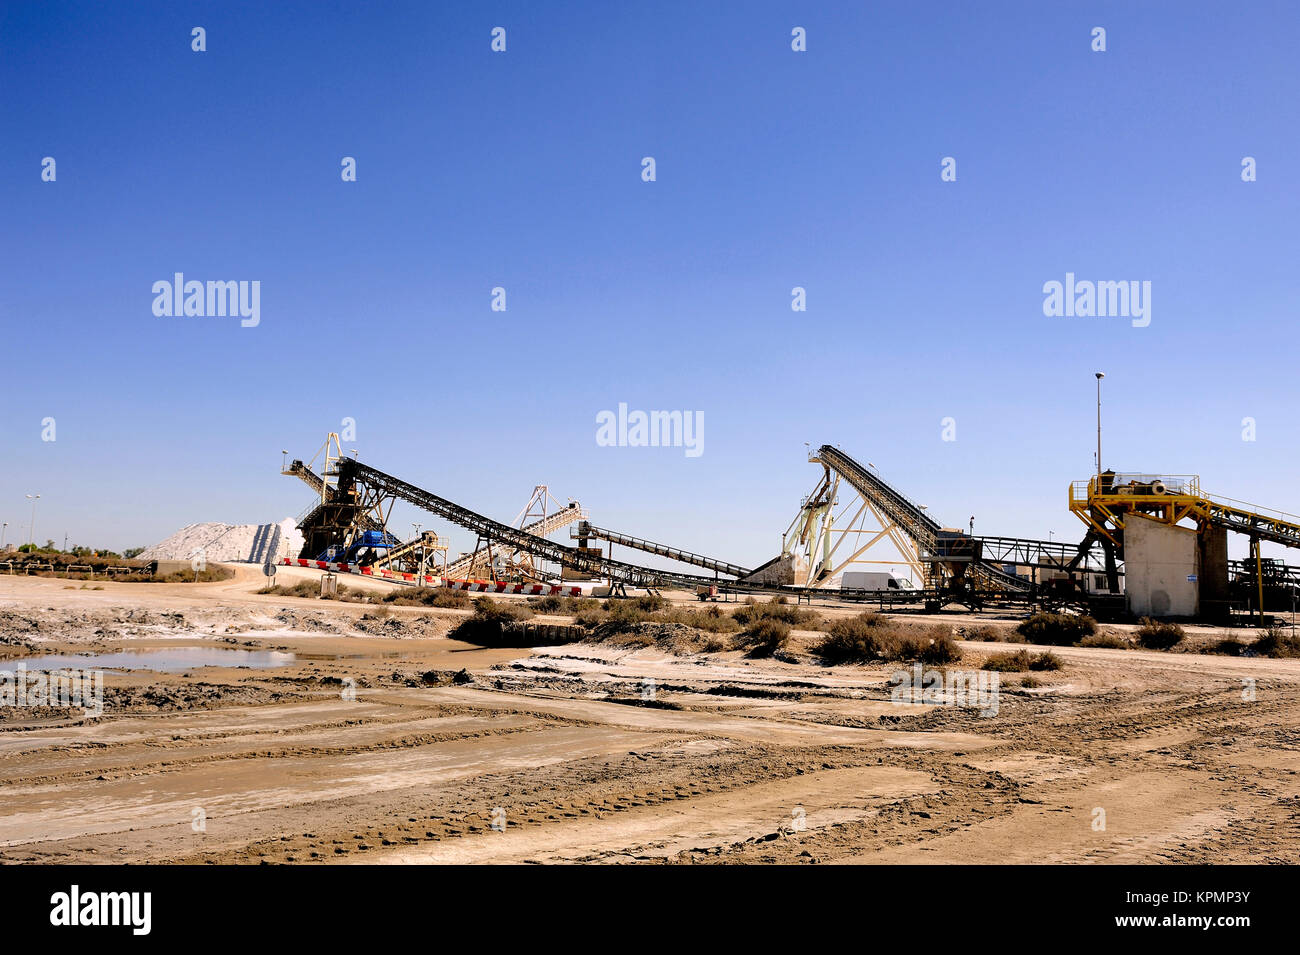 Site operating company saline Aigues-Mortes - Stock Image